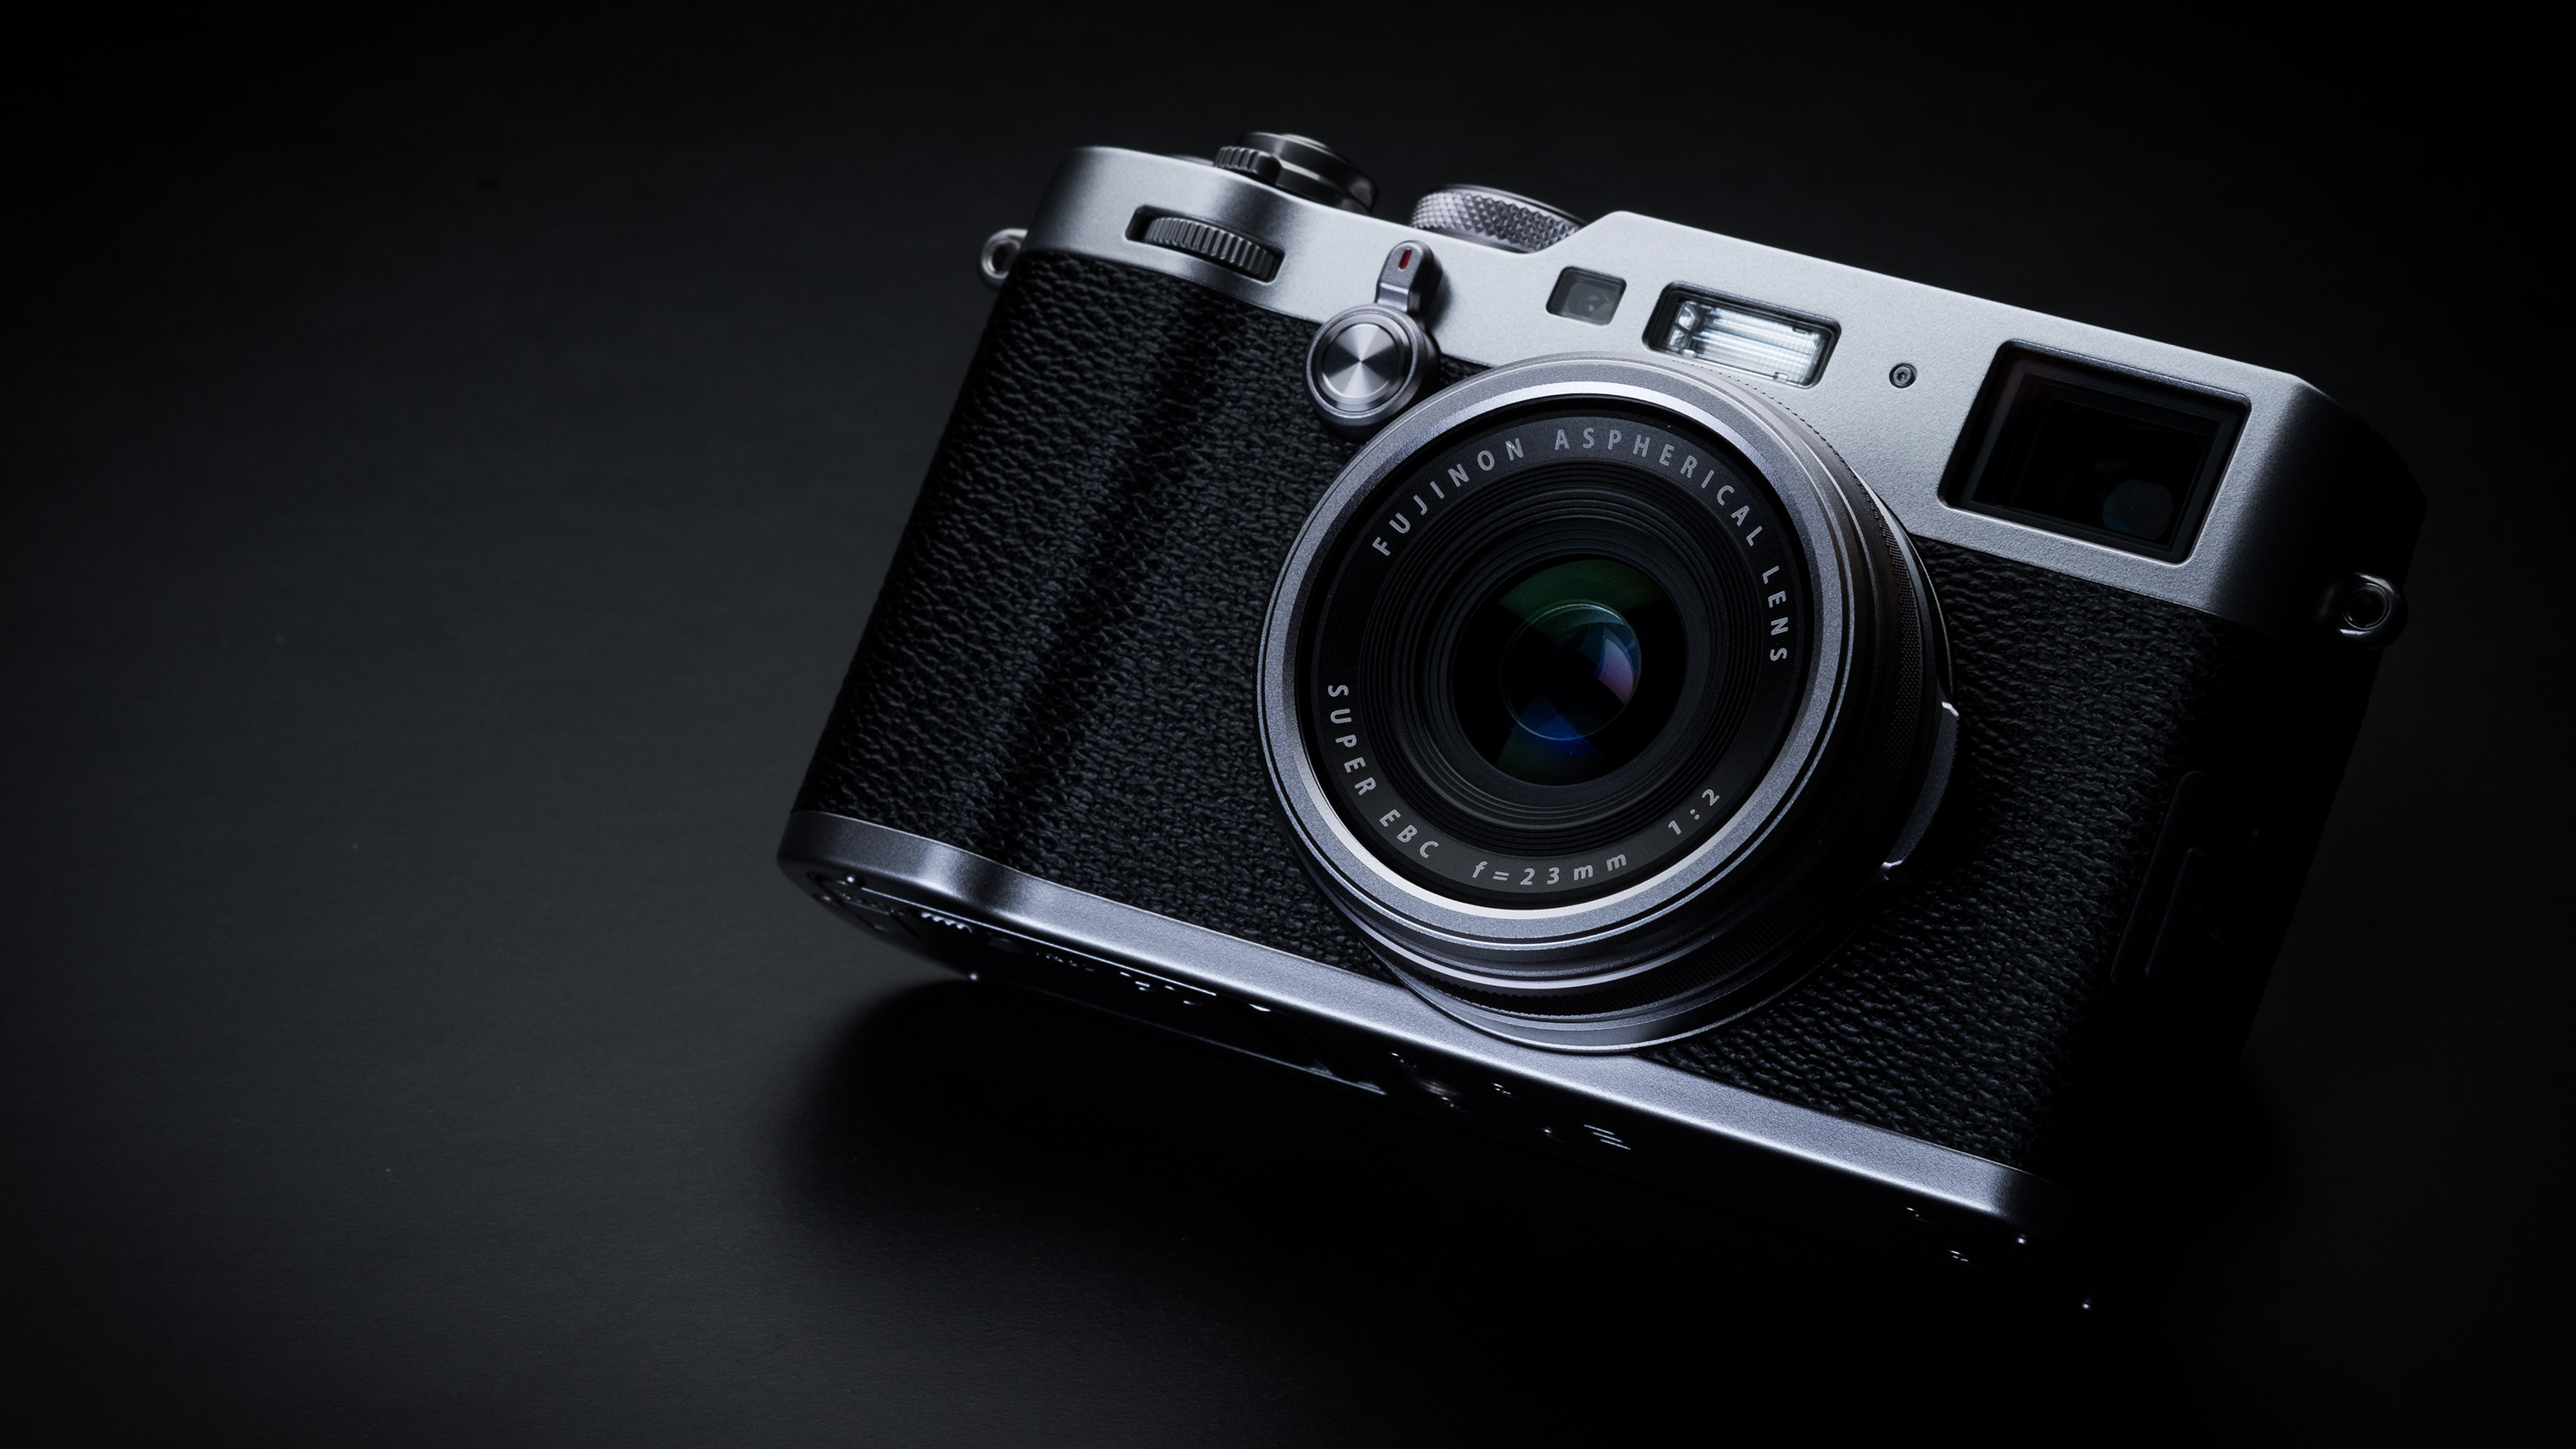 Best compact camera: Fujifilm X100F